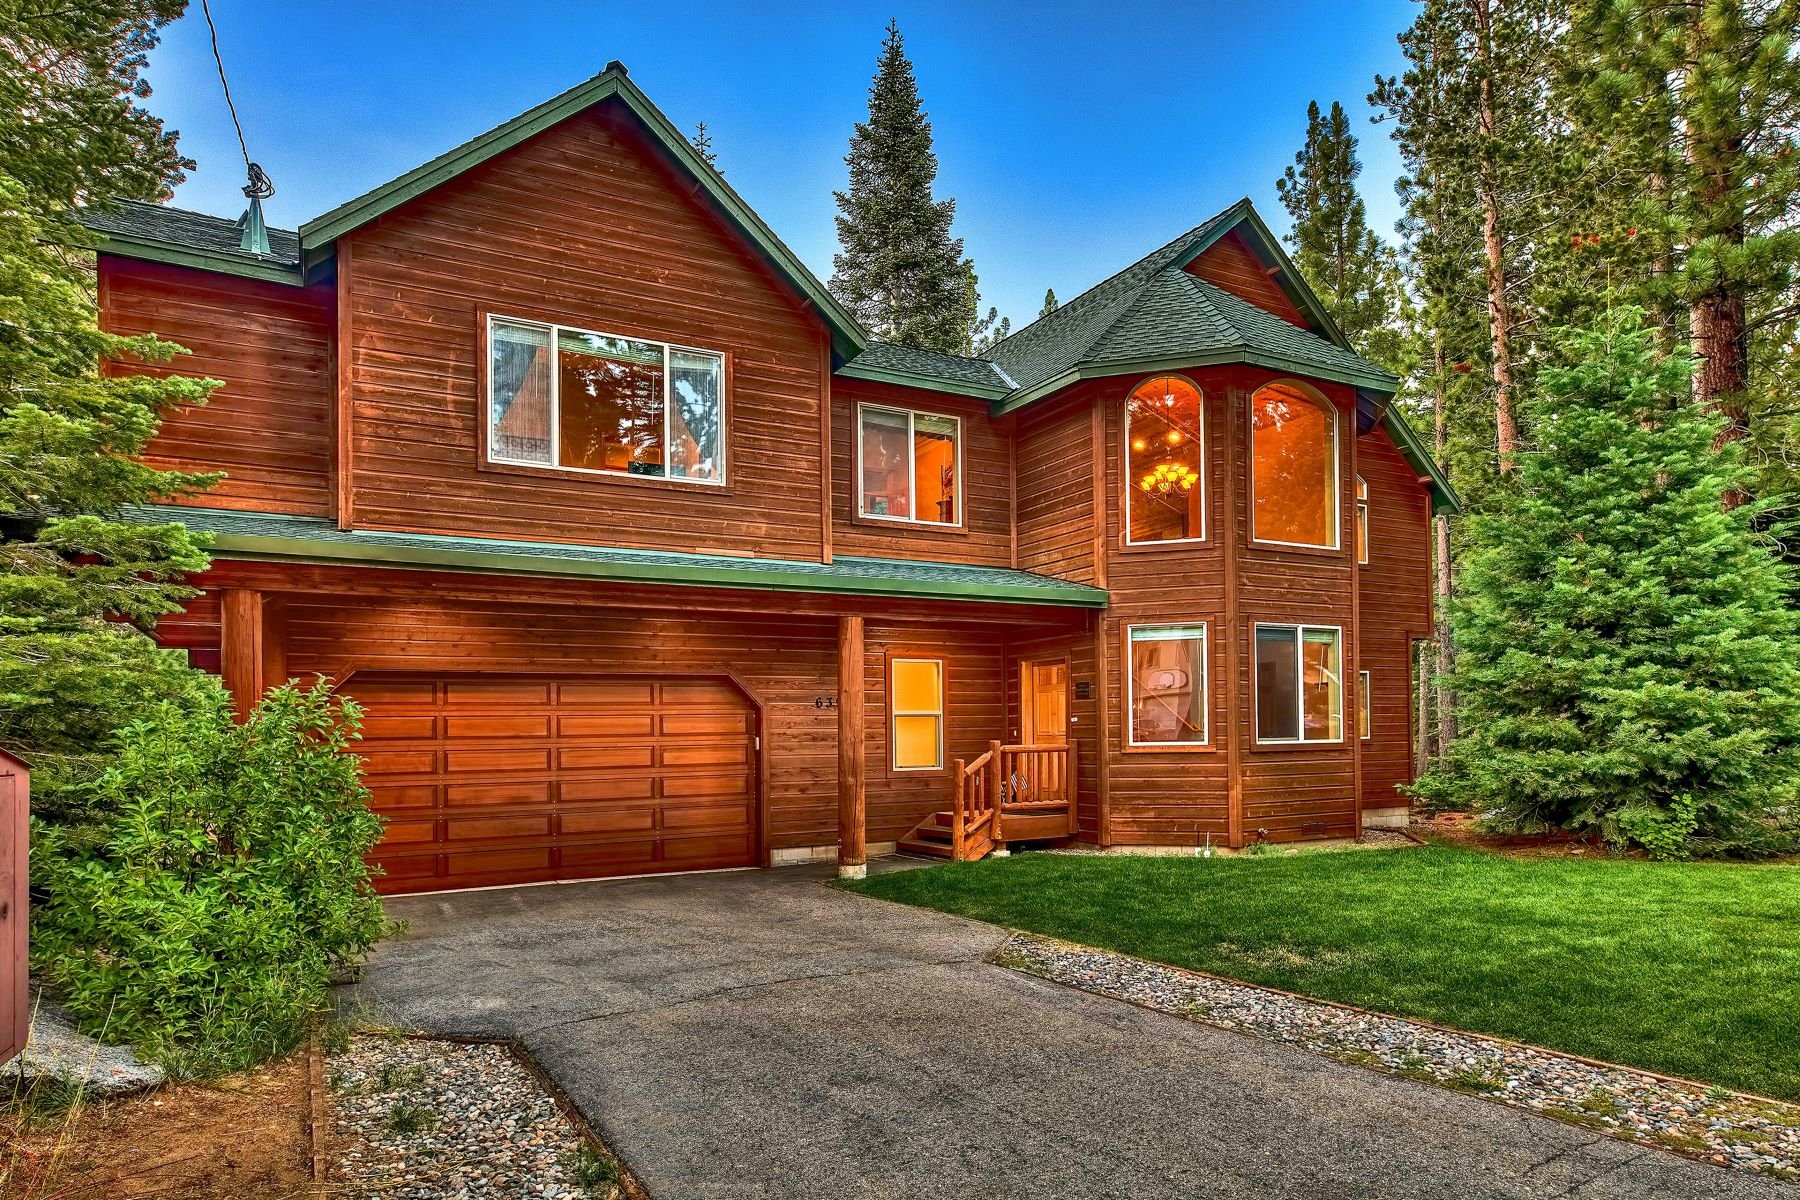 Property for Active at Turnkey Home 639 Tehama Drive South Lake Tahoe, California 96150 United States